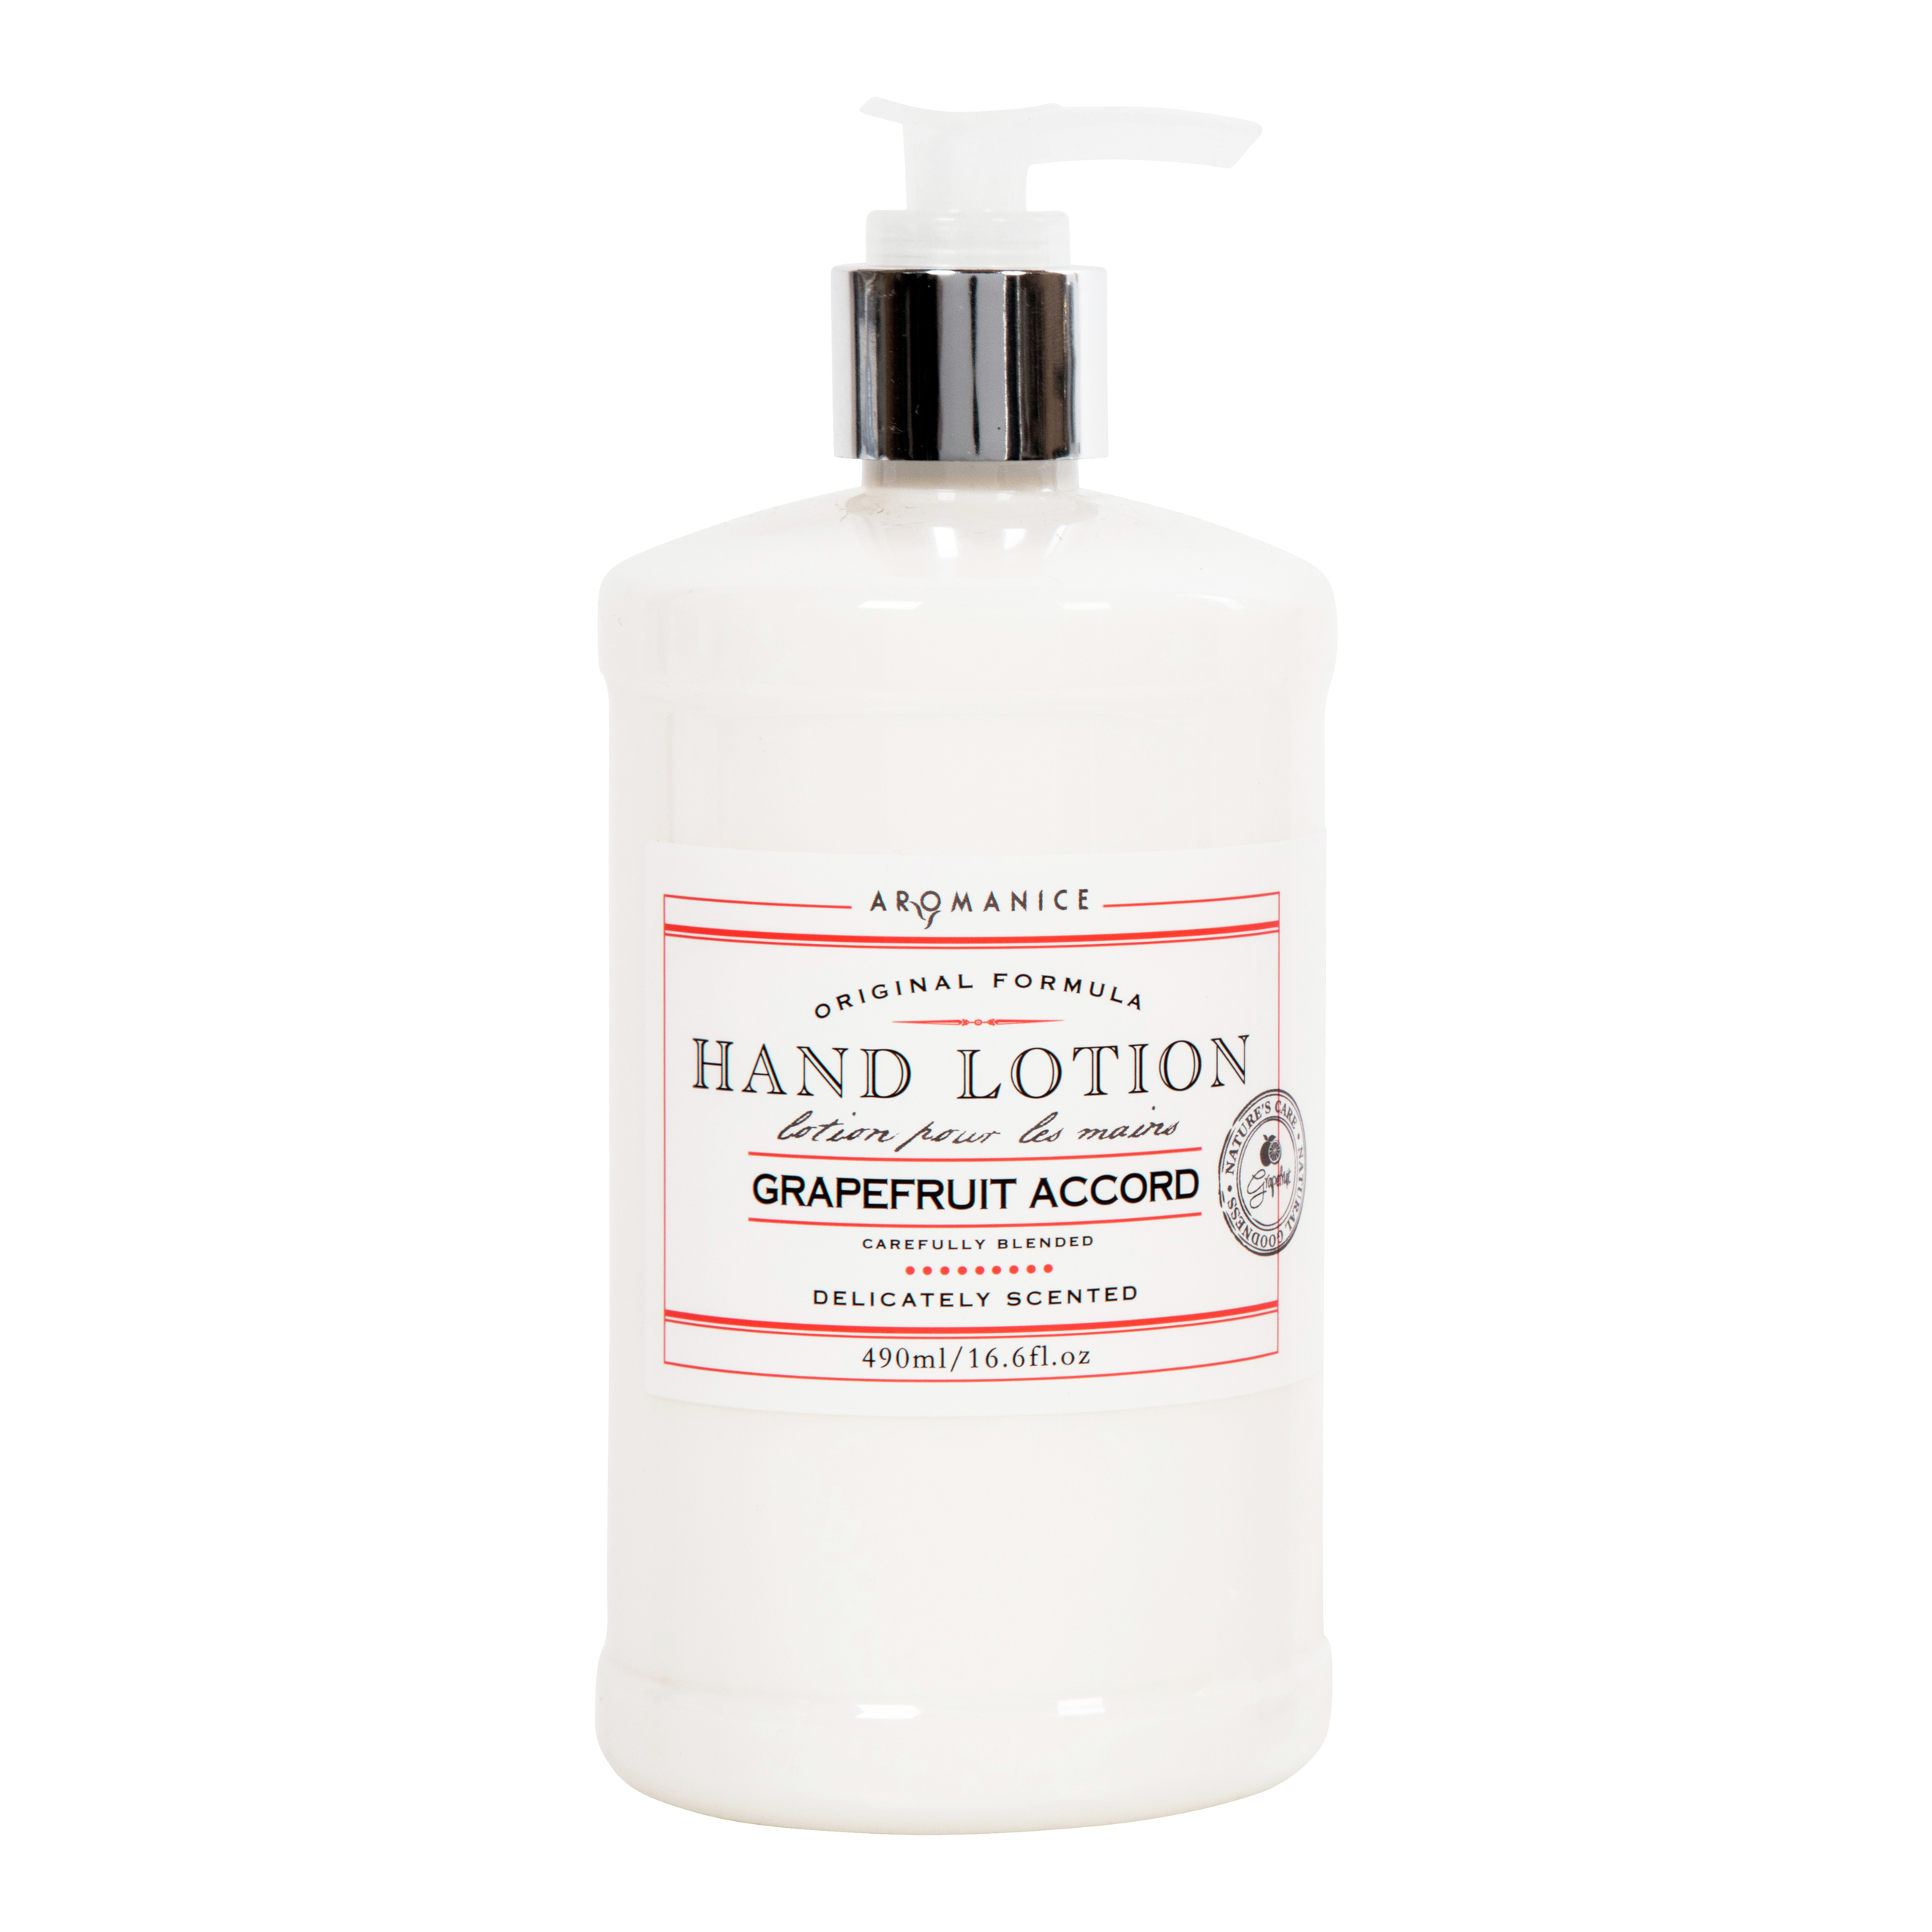 AROMANICE HANDLOTION GRAPEFRUI-KRE4201